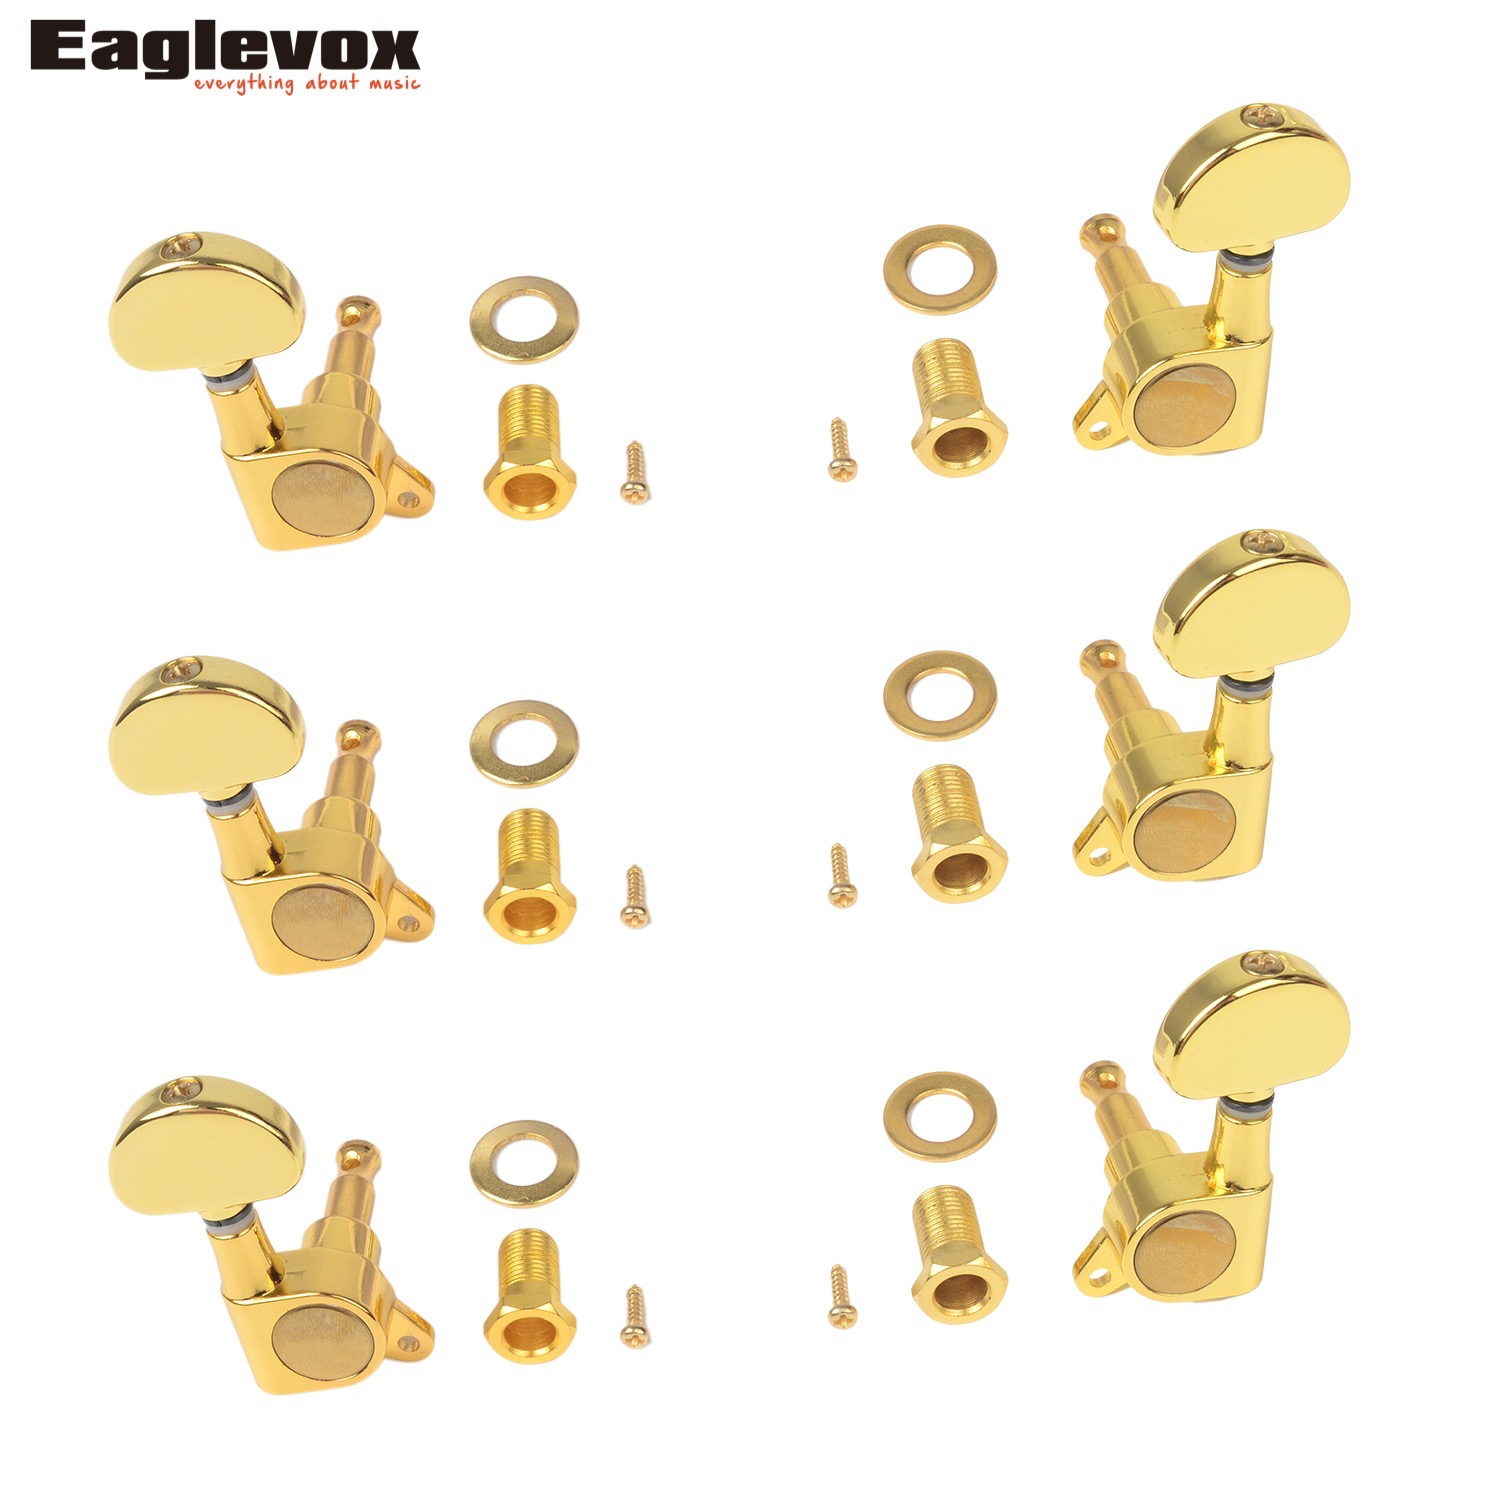 6 Pieces Acoustic Guitar Machine Heads Knobs Guitar String Tuning Peg Tuner Closed Knob Gold Plated Zinc Alloy AD-016JP sews alice aos 020b1p 2pcs left right classical guitar tuning key plated peg tuner machine head string tuner